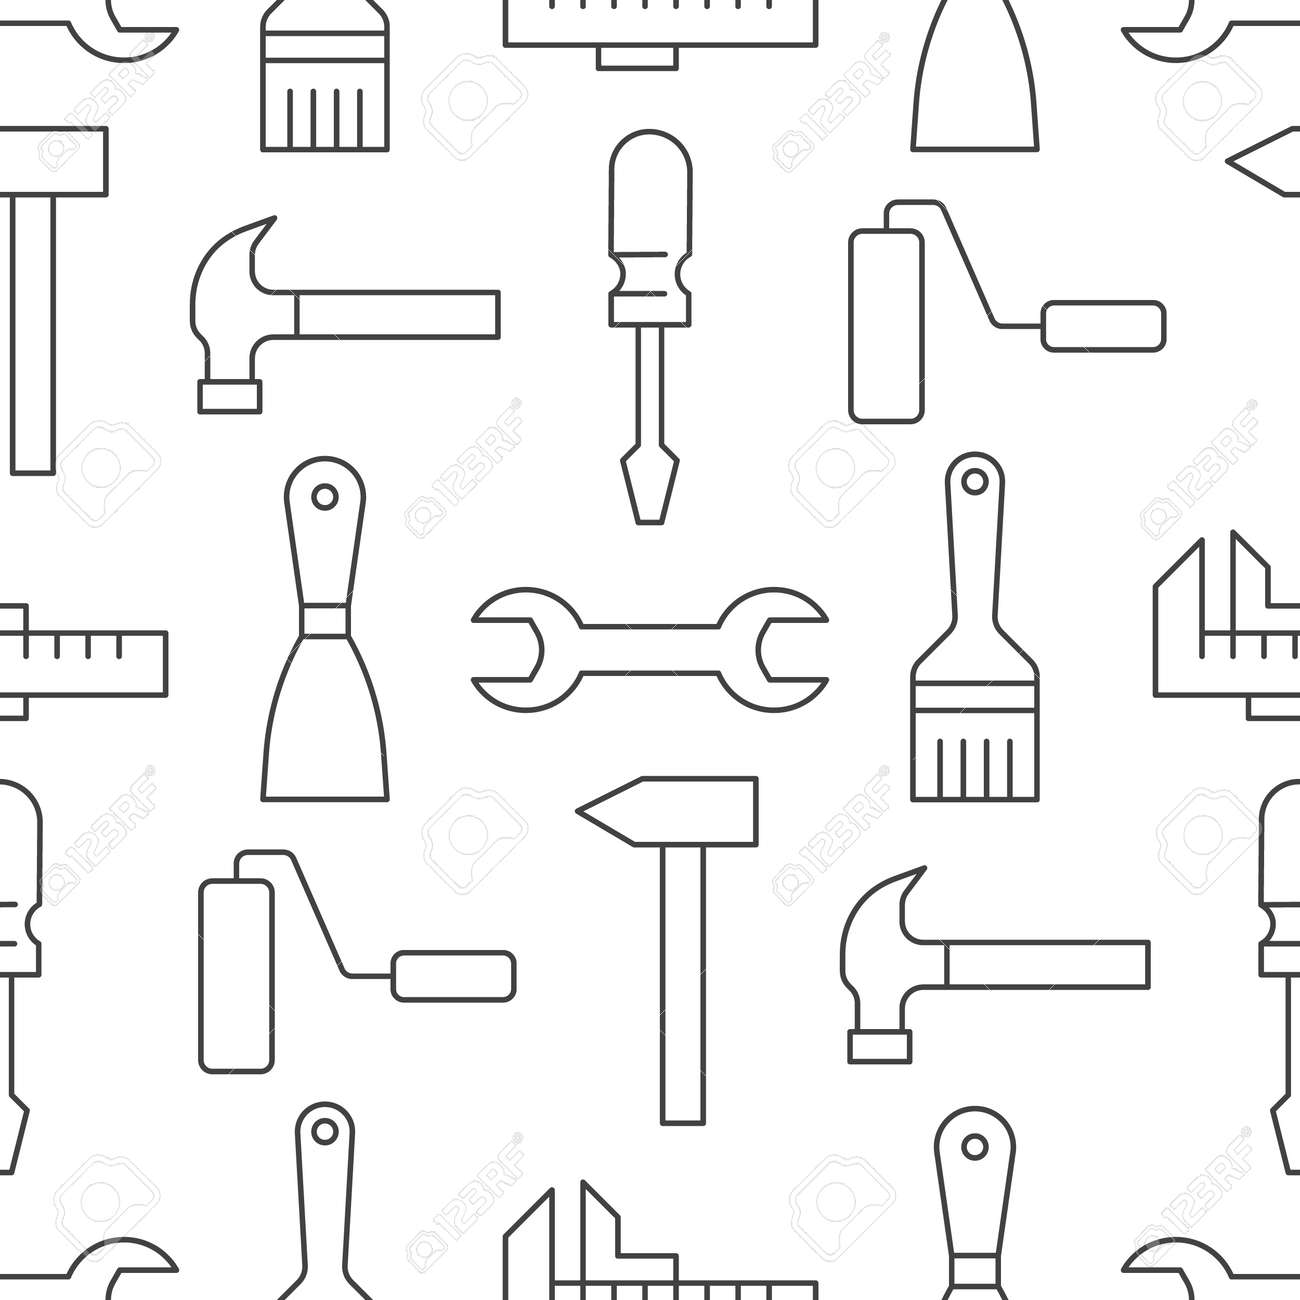 Building tools background, repair equipment seamless pattern with flat line icons of paintbrush, wrench, screwdriver, hammer and others. Construction works vector illustration black white color. - 158893848